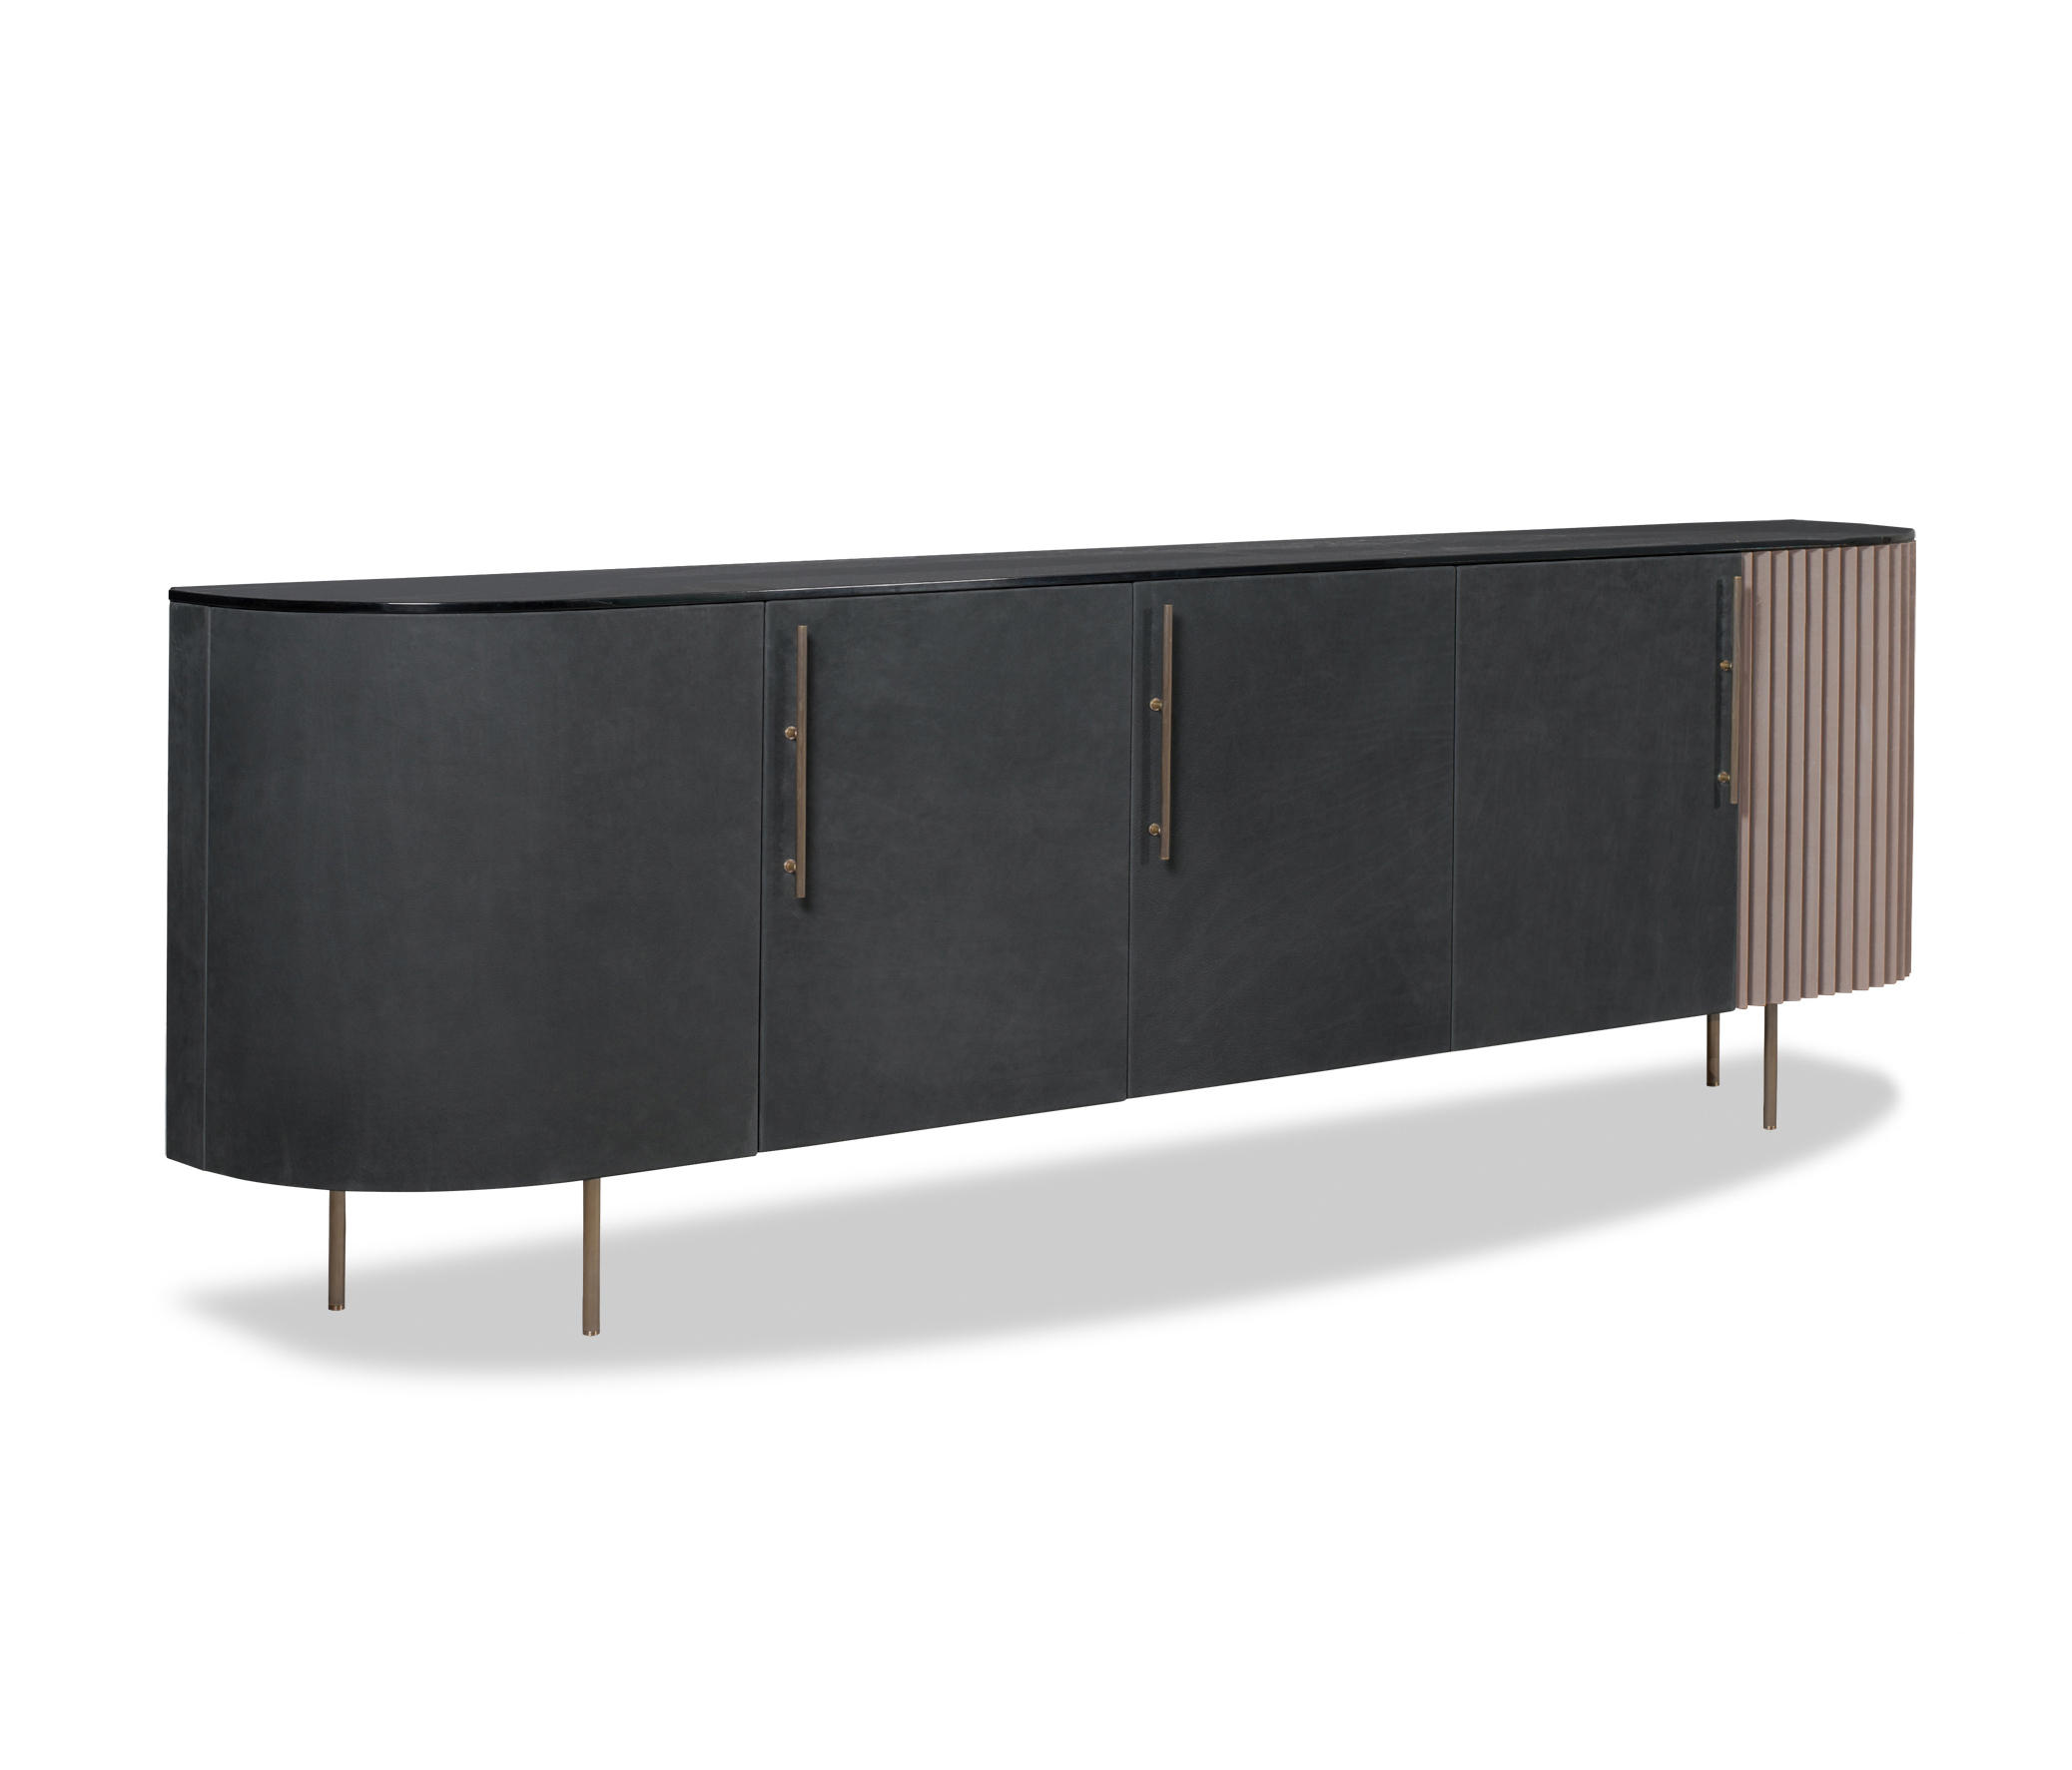 pliss low cabinet sideboards from baxter architonic. Black Bedroom Furniture Sets. Home Design Ideas